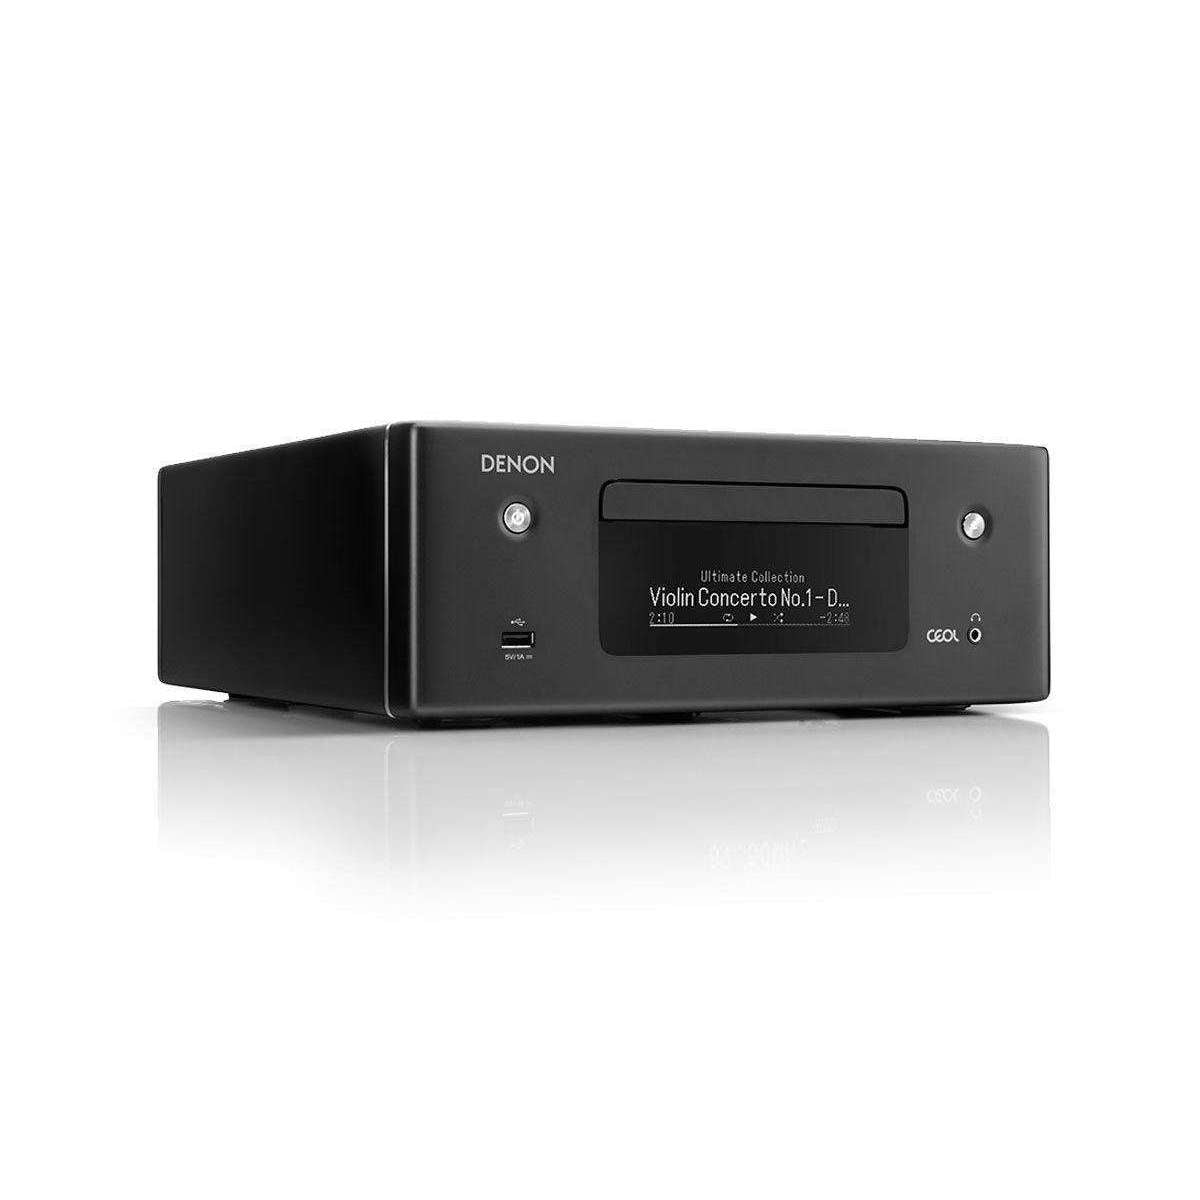 Denon CEOL N10 Hi-Fi Network CD Receiver - Black - Call SpatialOnline 0345 557 7334